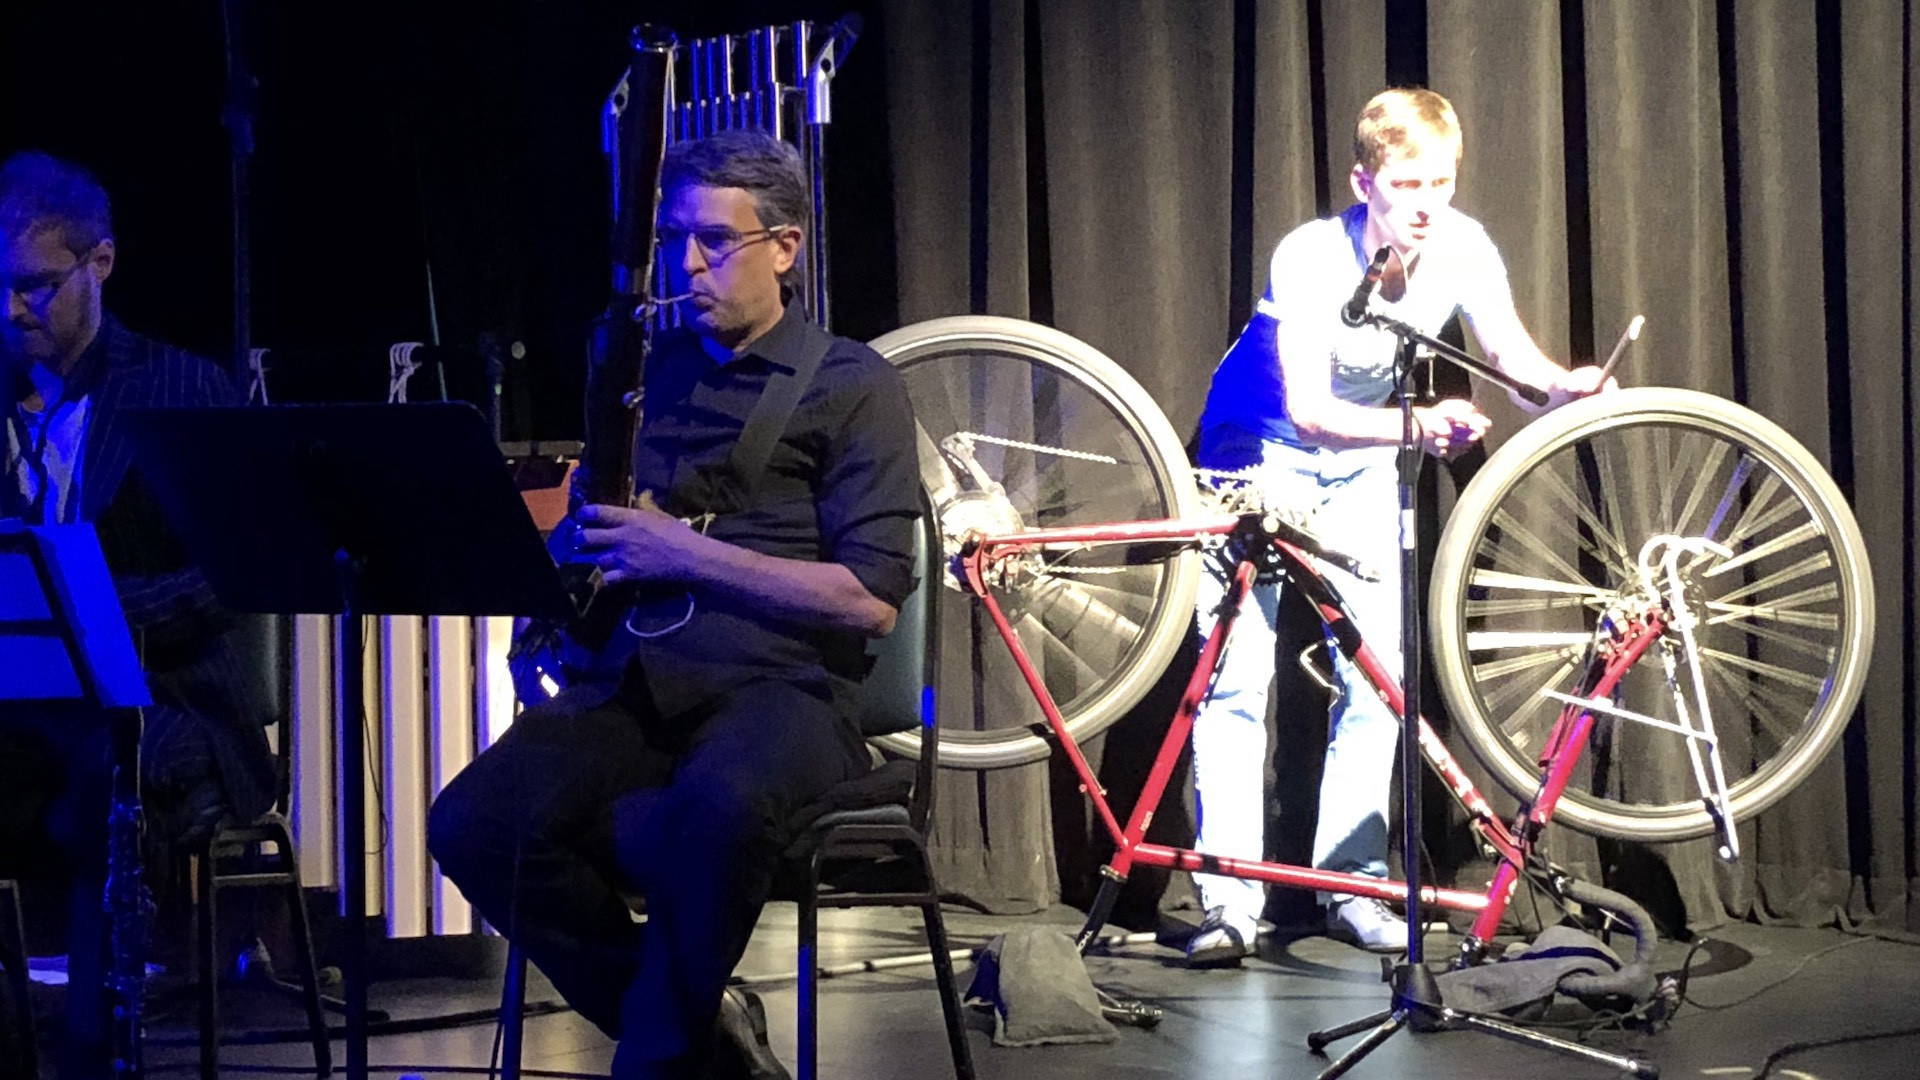 Man sits and plays a musical instrument. Another man stands behind him and makes music using a bicycle tire.